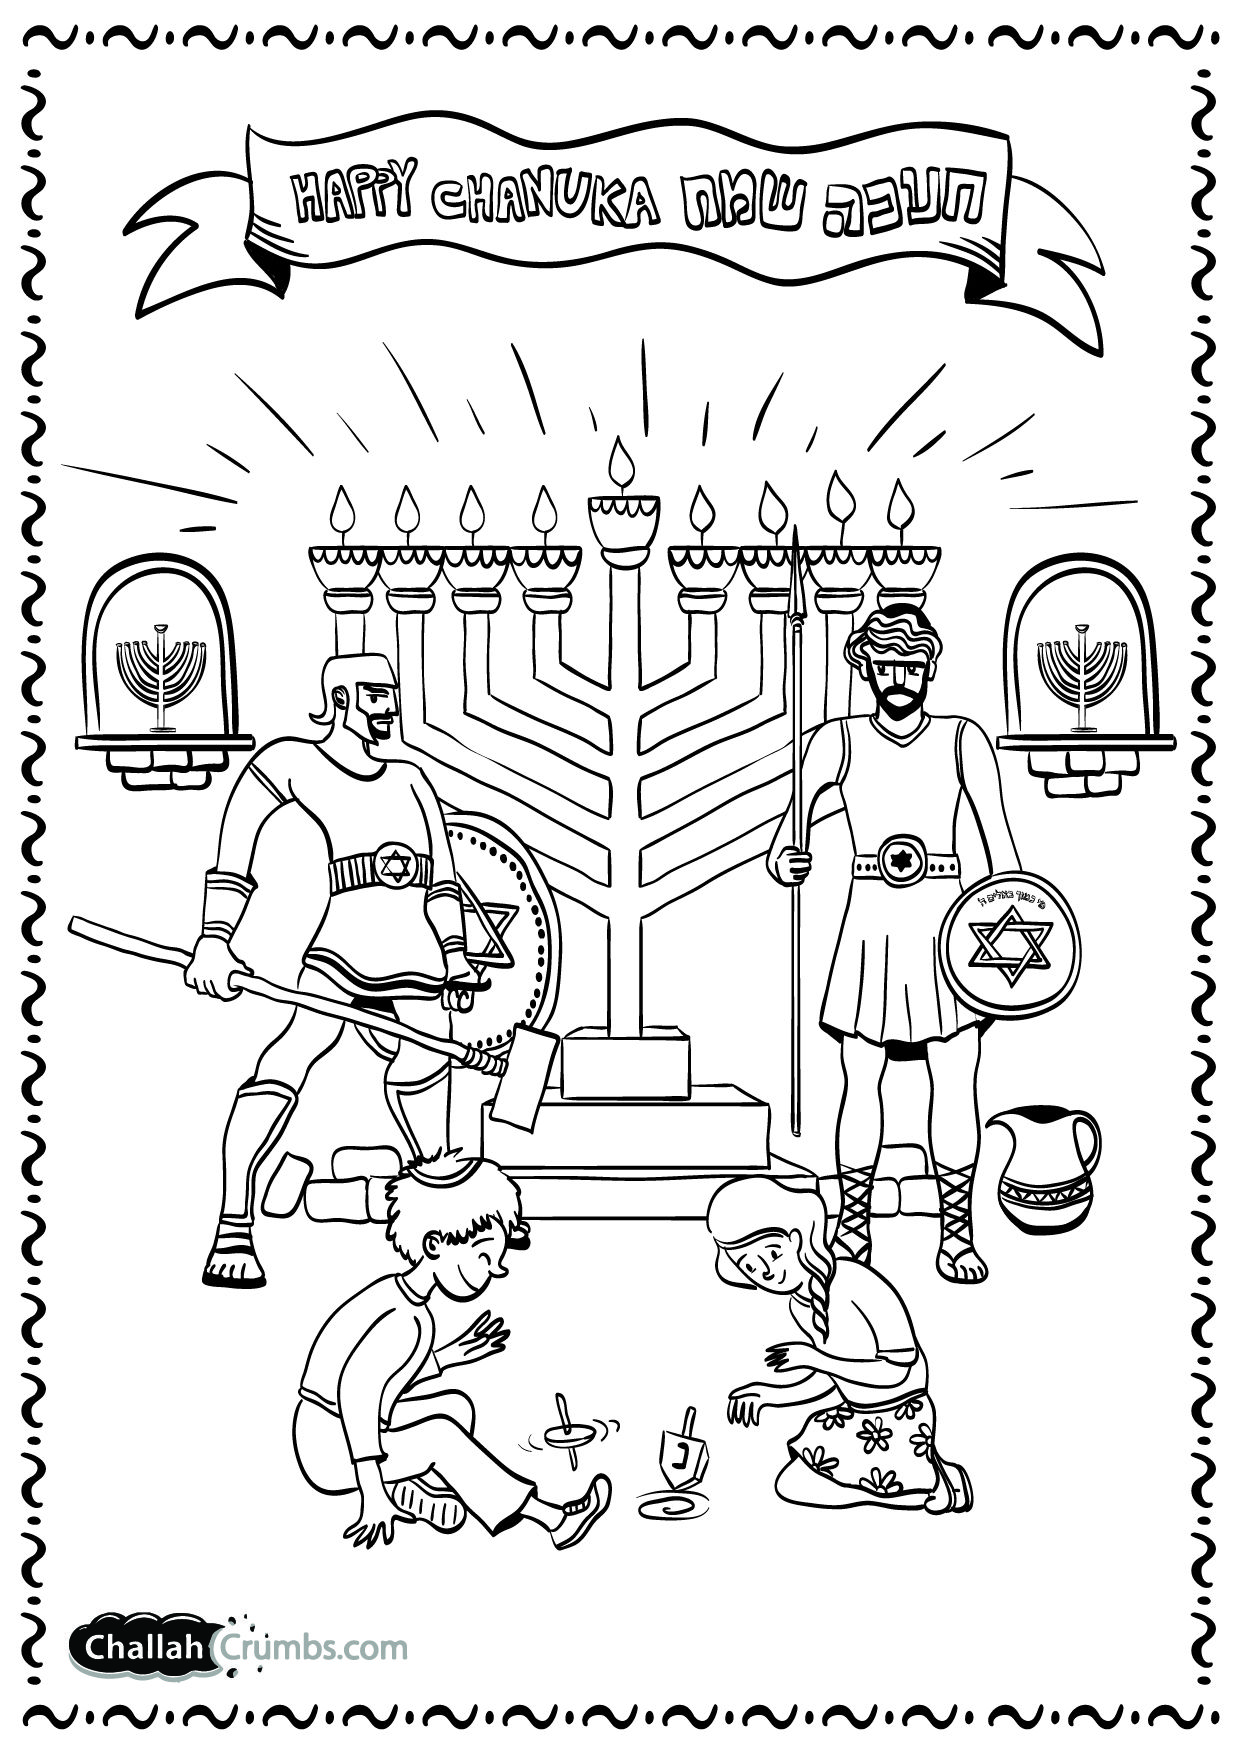 Chanuka Coloring Page Click On Page To Print Challah Crumbs Coloring Pages Bible Coloring Free Printable Coloring Pages [ 1754 x 1240 Pixel ]